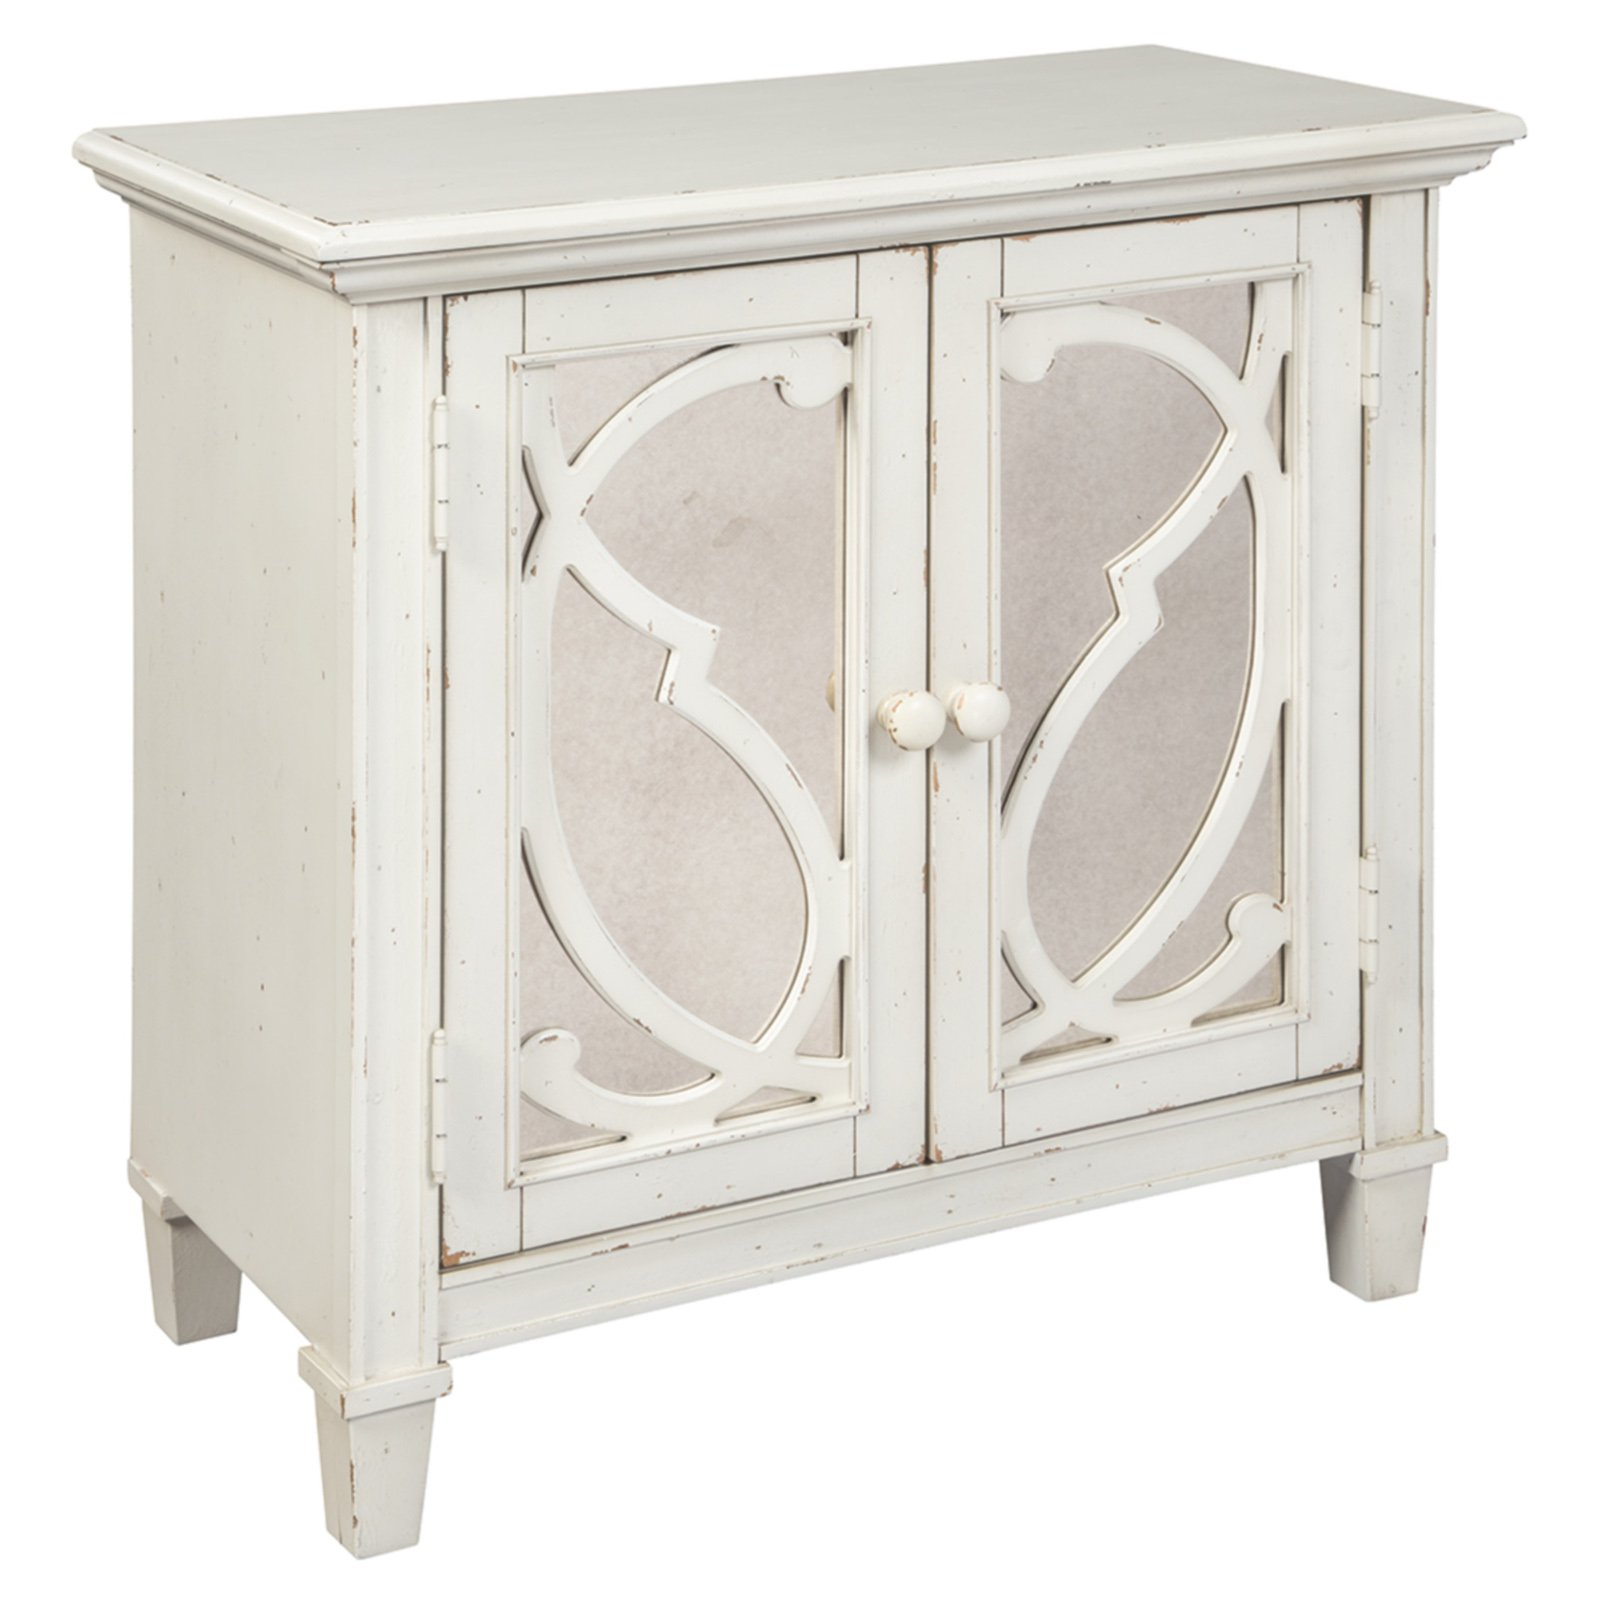 Signature Design by Ashley Mirimyn 30 in. Mirrored Door Accent Cabinet